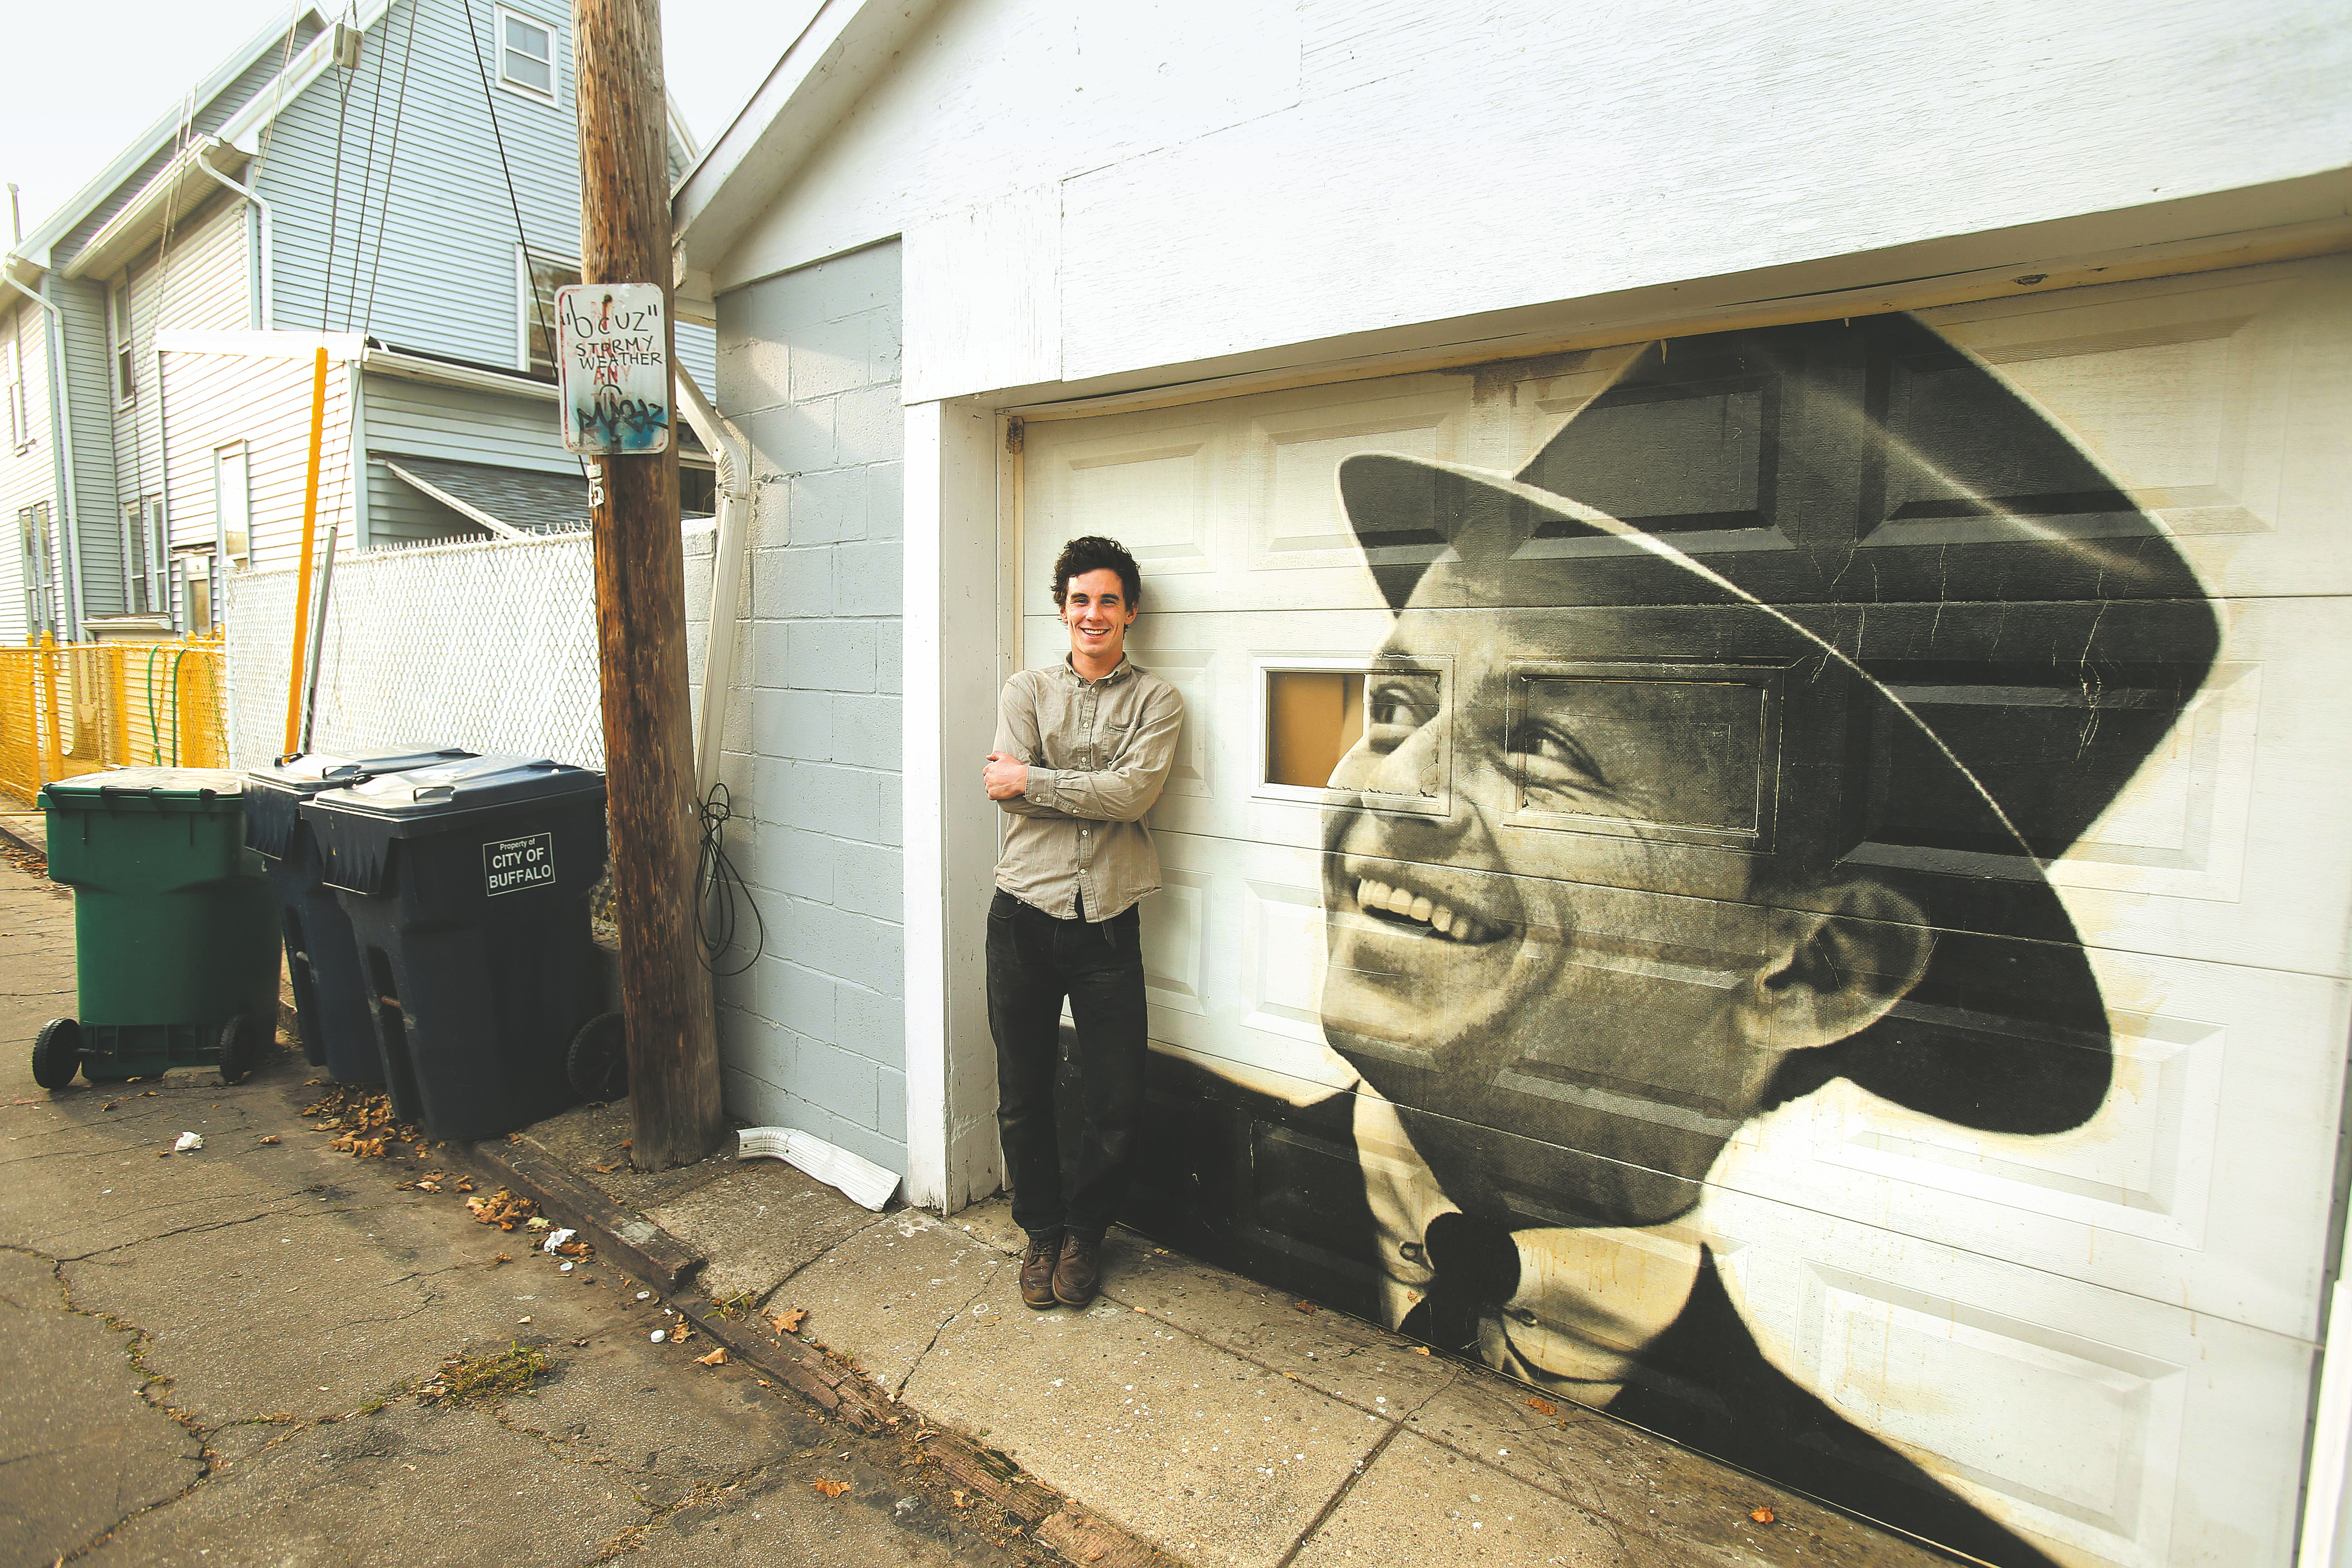 Max collins and putting frank sinatra on the garage door the some of max collins murals include frank sinatra on a garage on west tupper near rubansaba